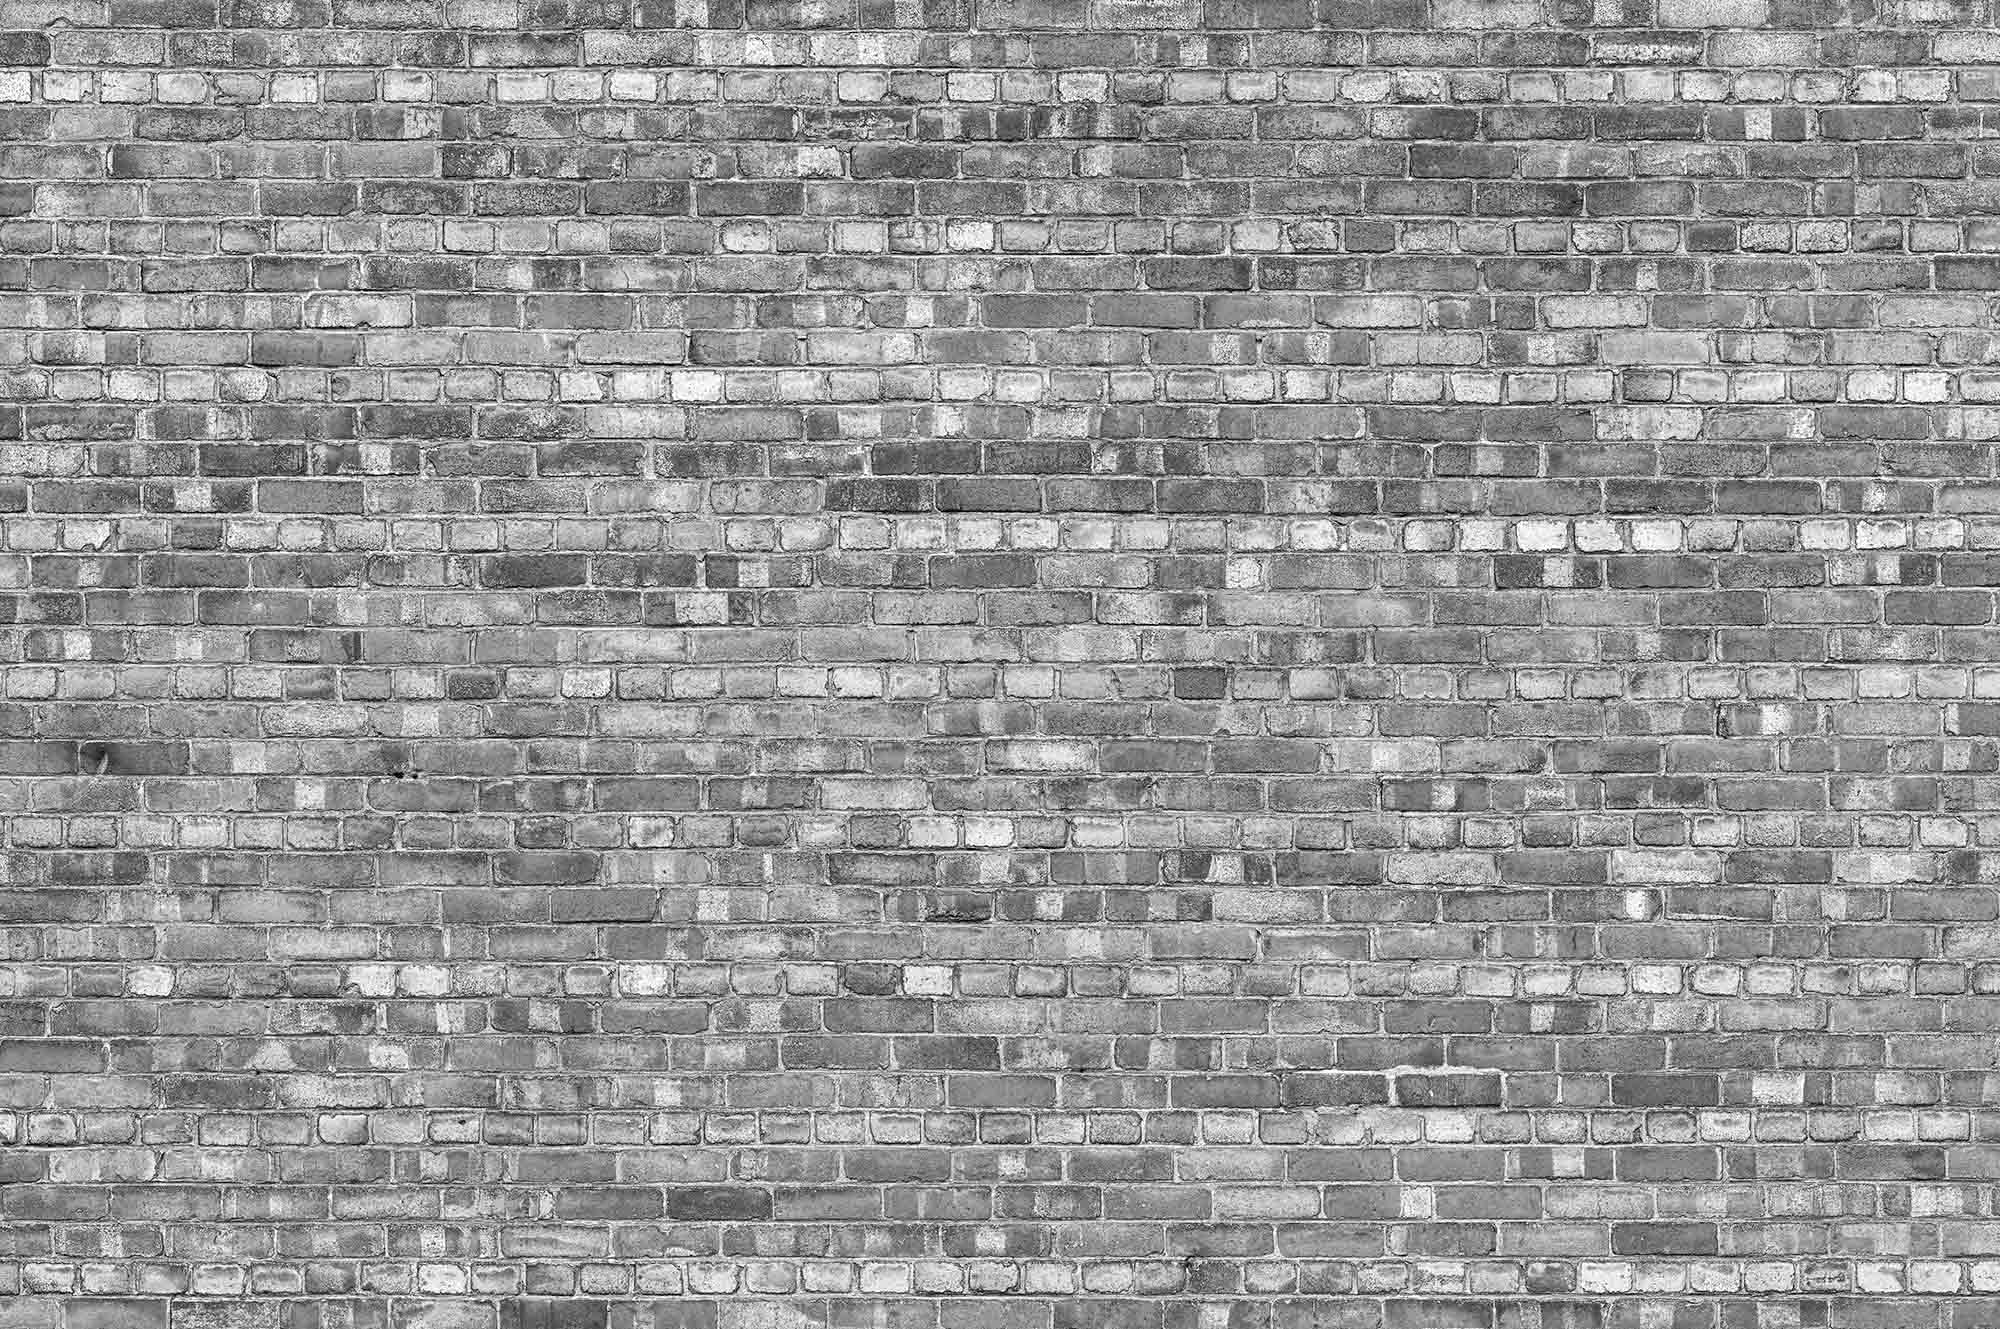 Wallpaper Mural Old Brick Wall Black And White Muralunique